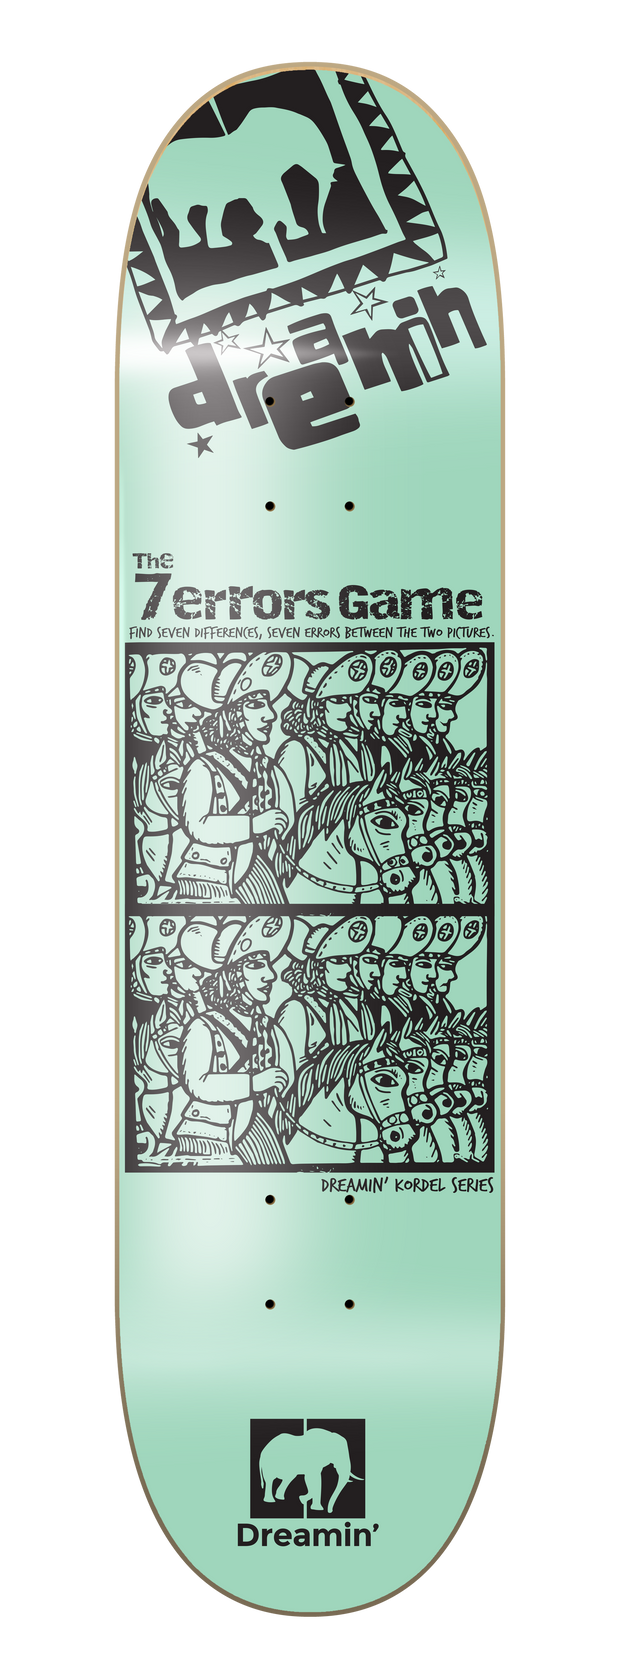 Kordel Series - 7 Errors Game